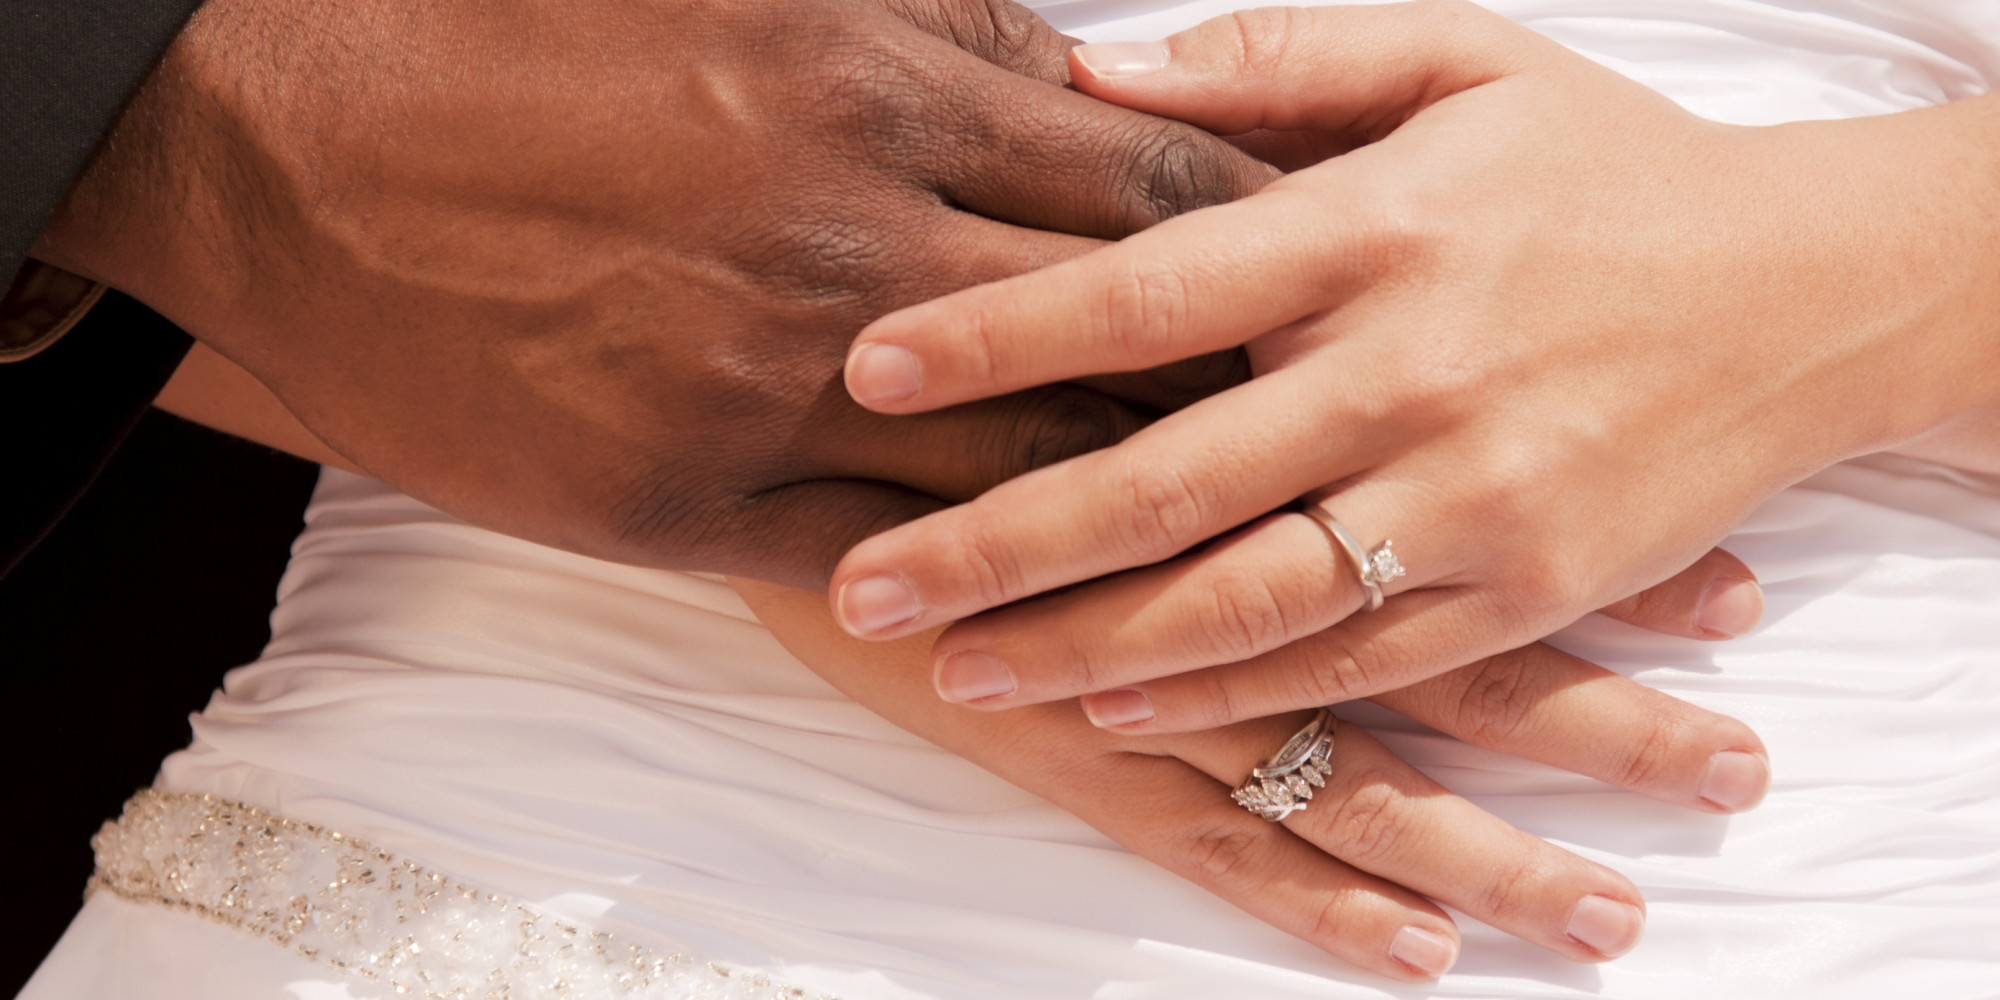 The battle over inter-racial marriage in the US